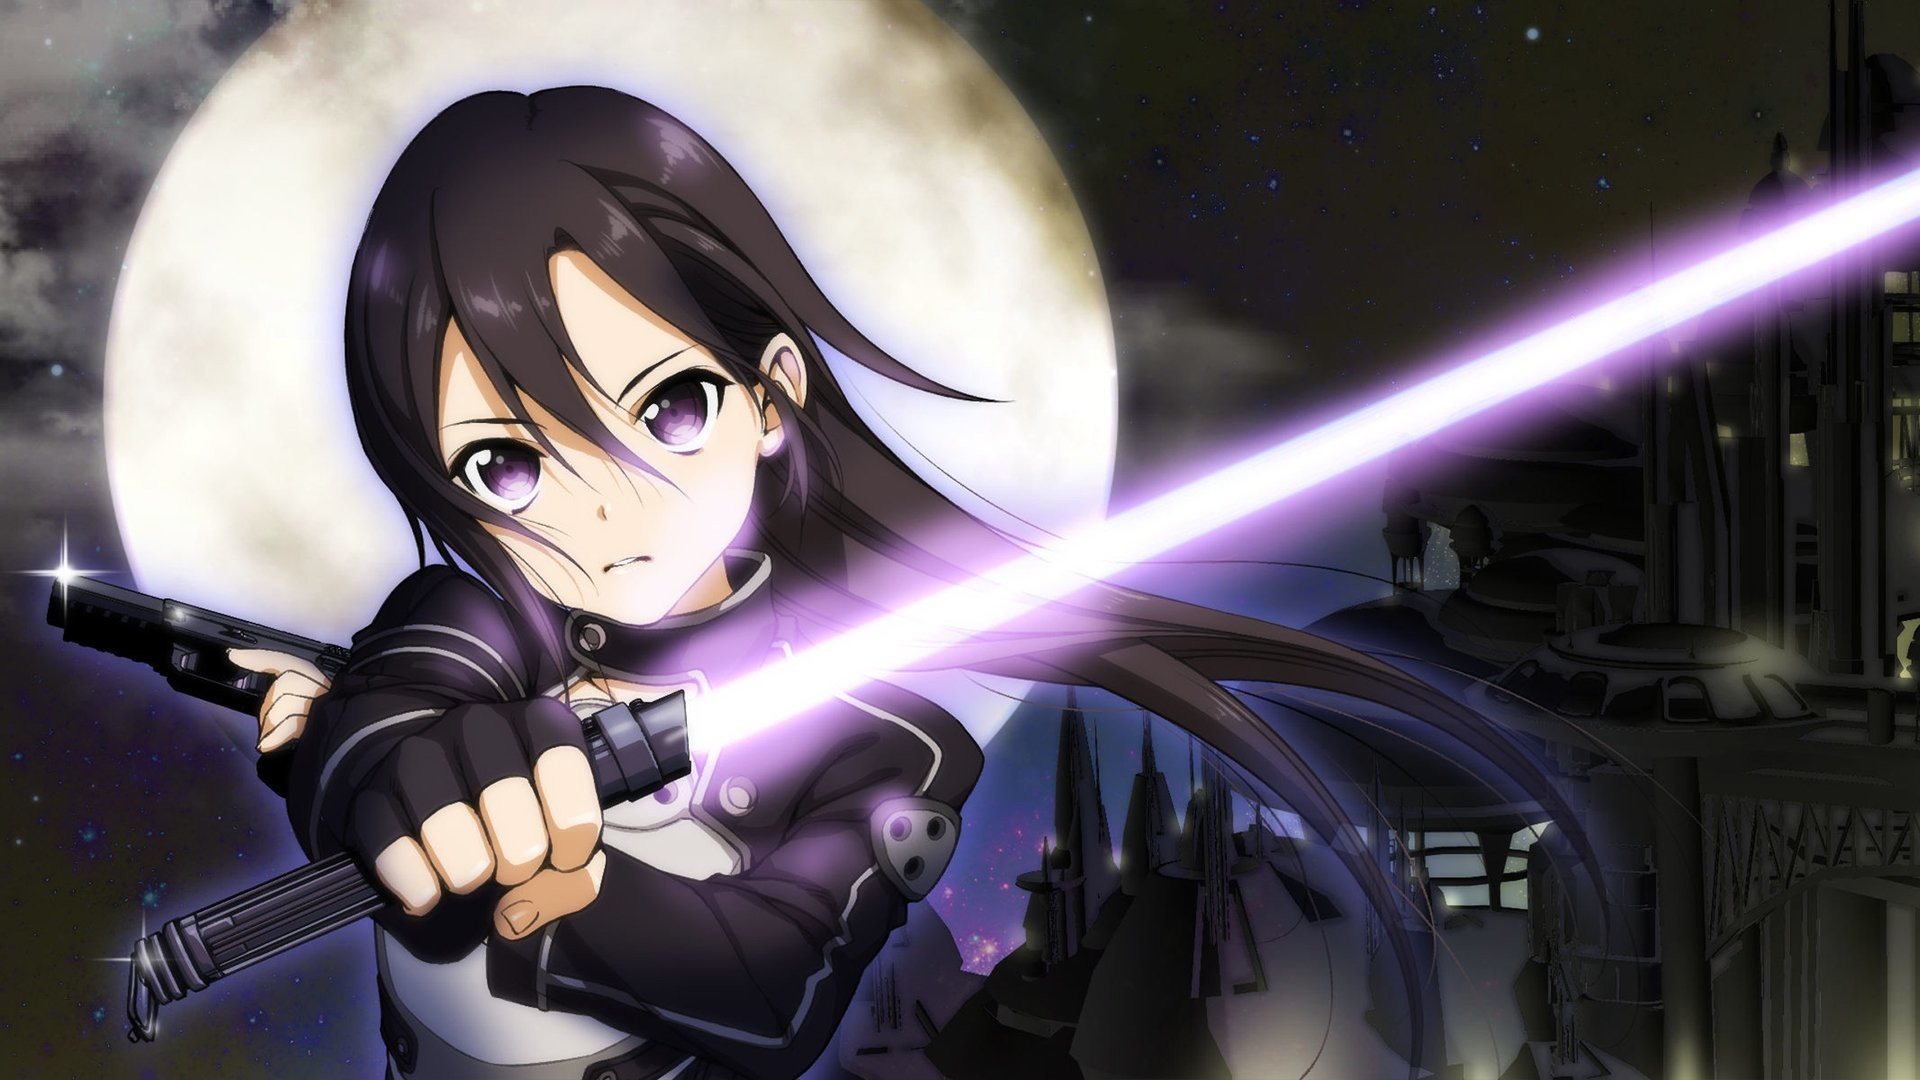 Anime fighting wallpaper 69 images - Girl with sword wallpaper ...